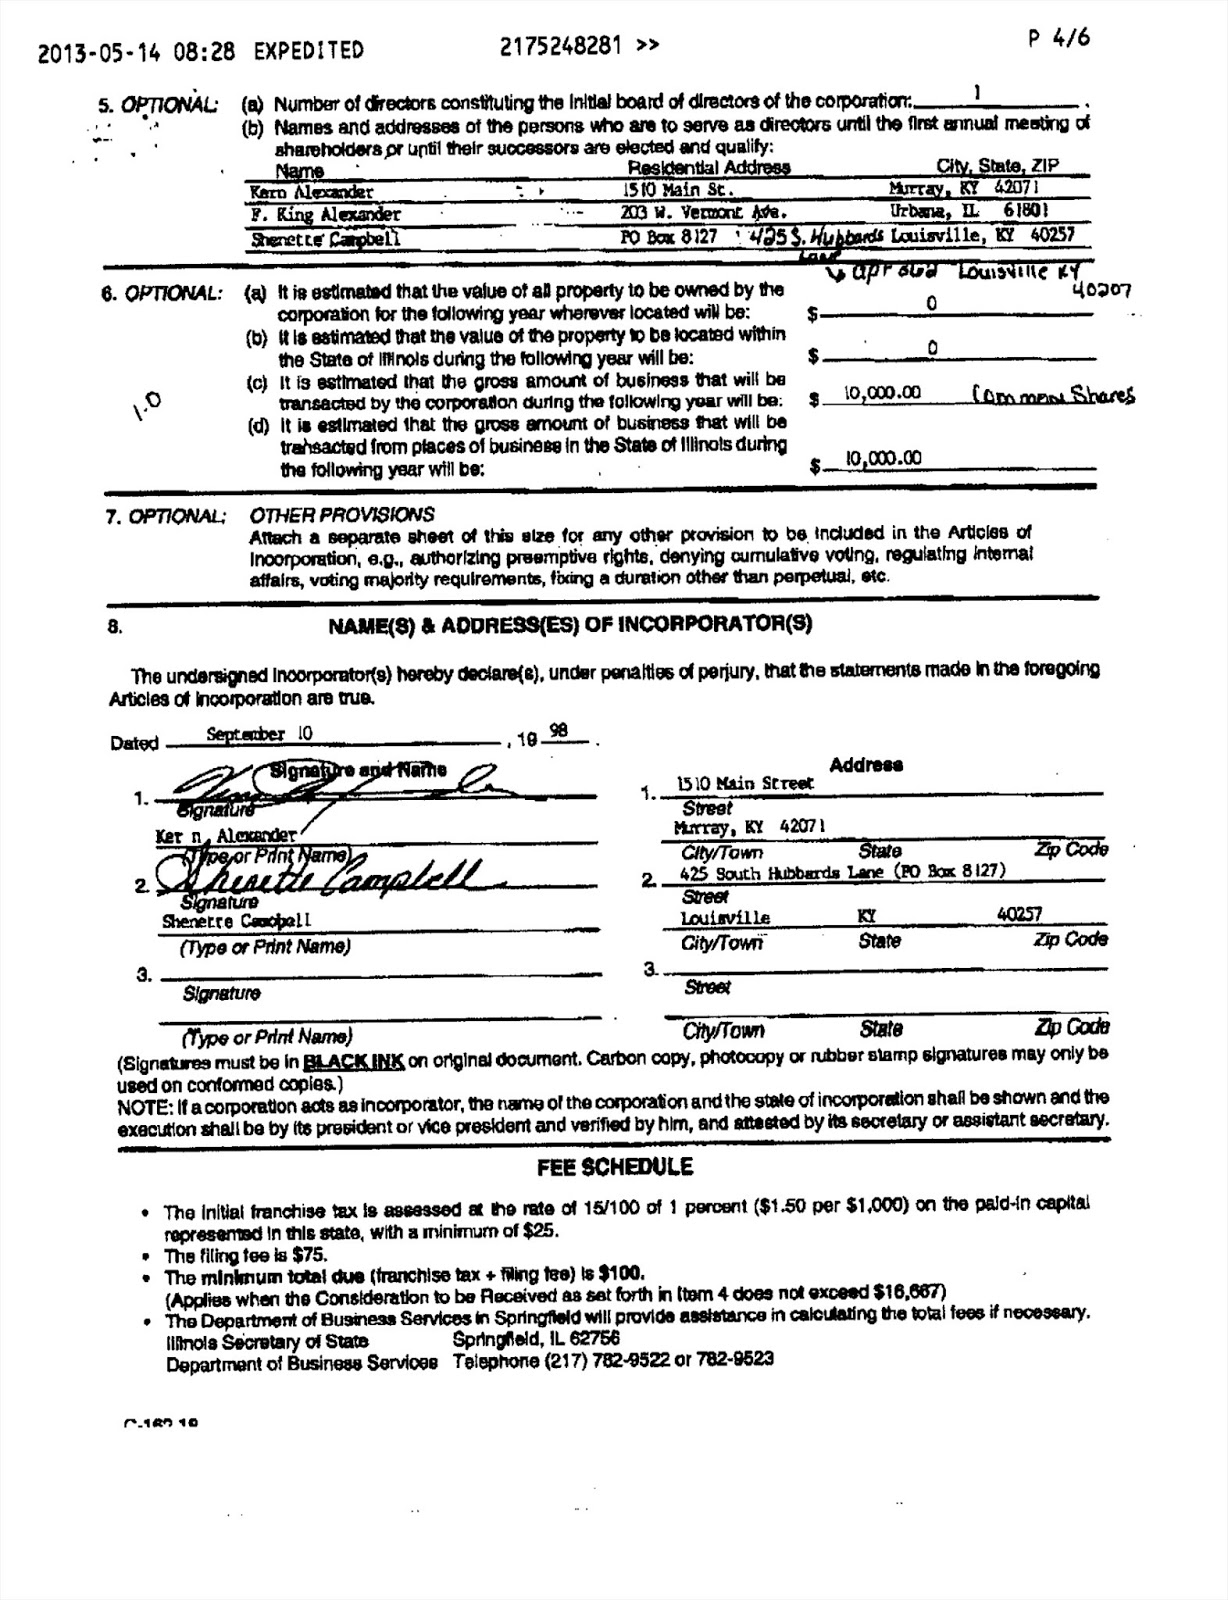 Illinois annual report form llc accurate but llc 14 – ndoilrigs.